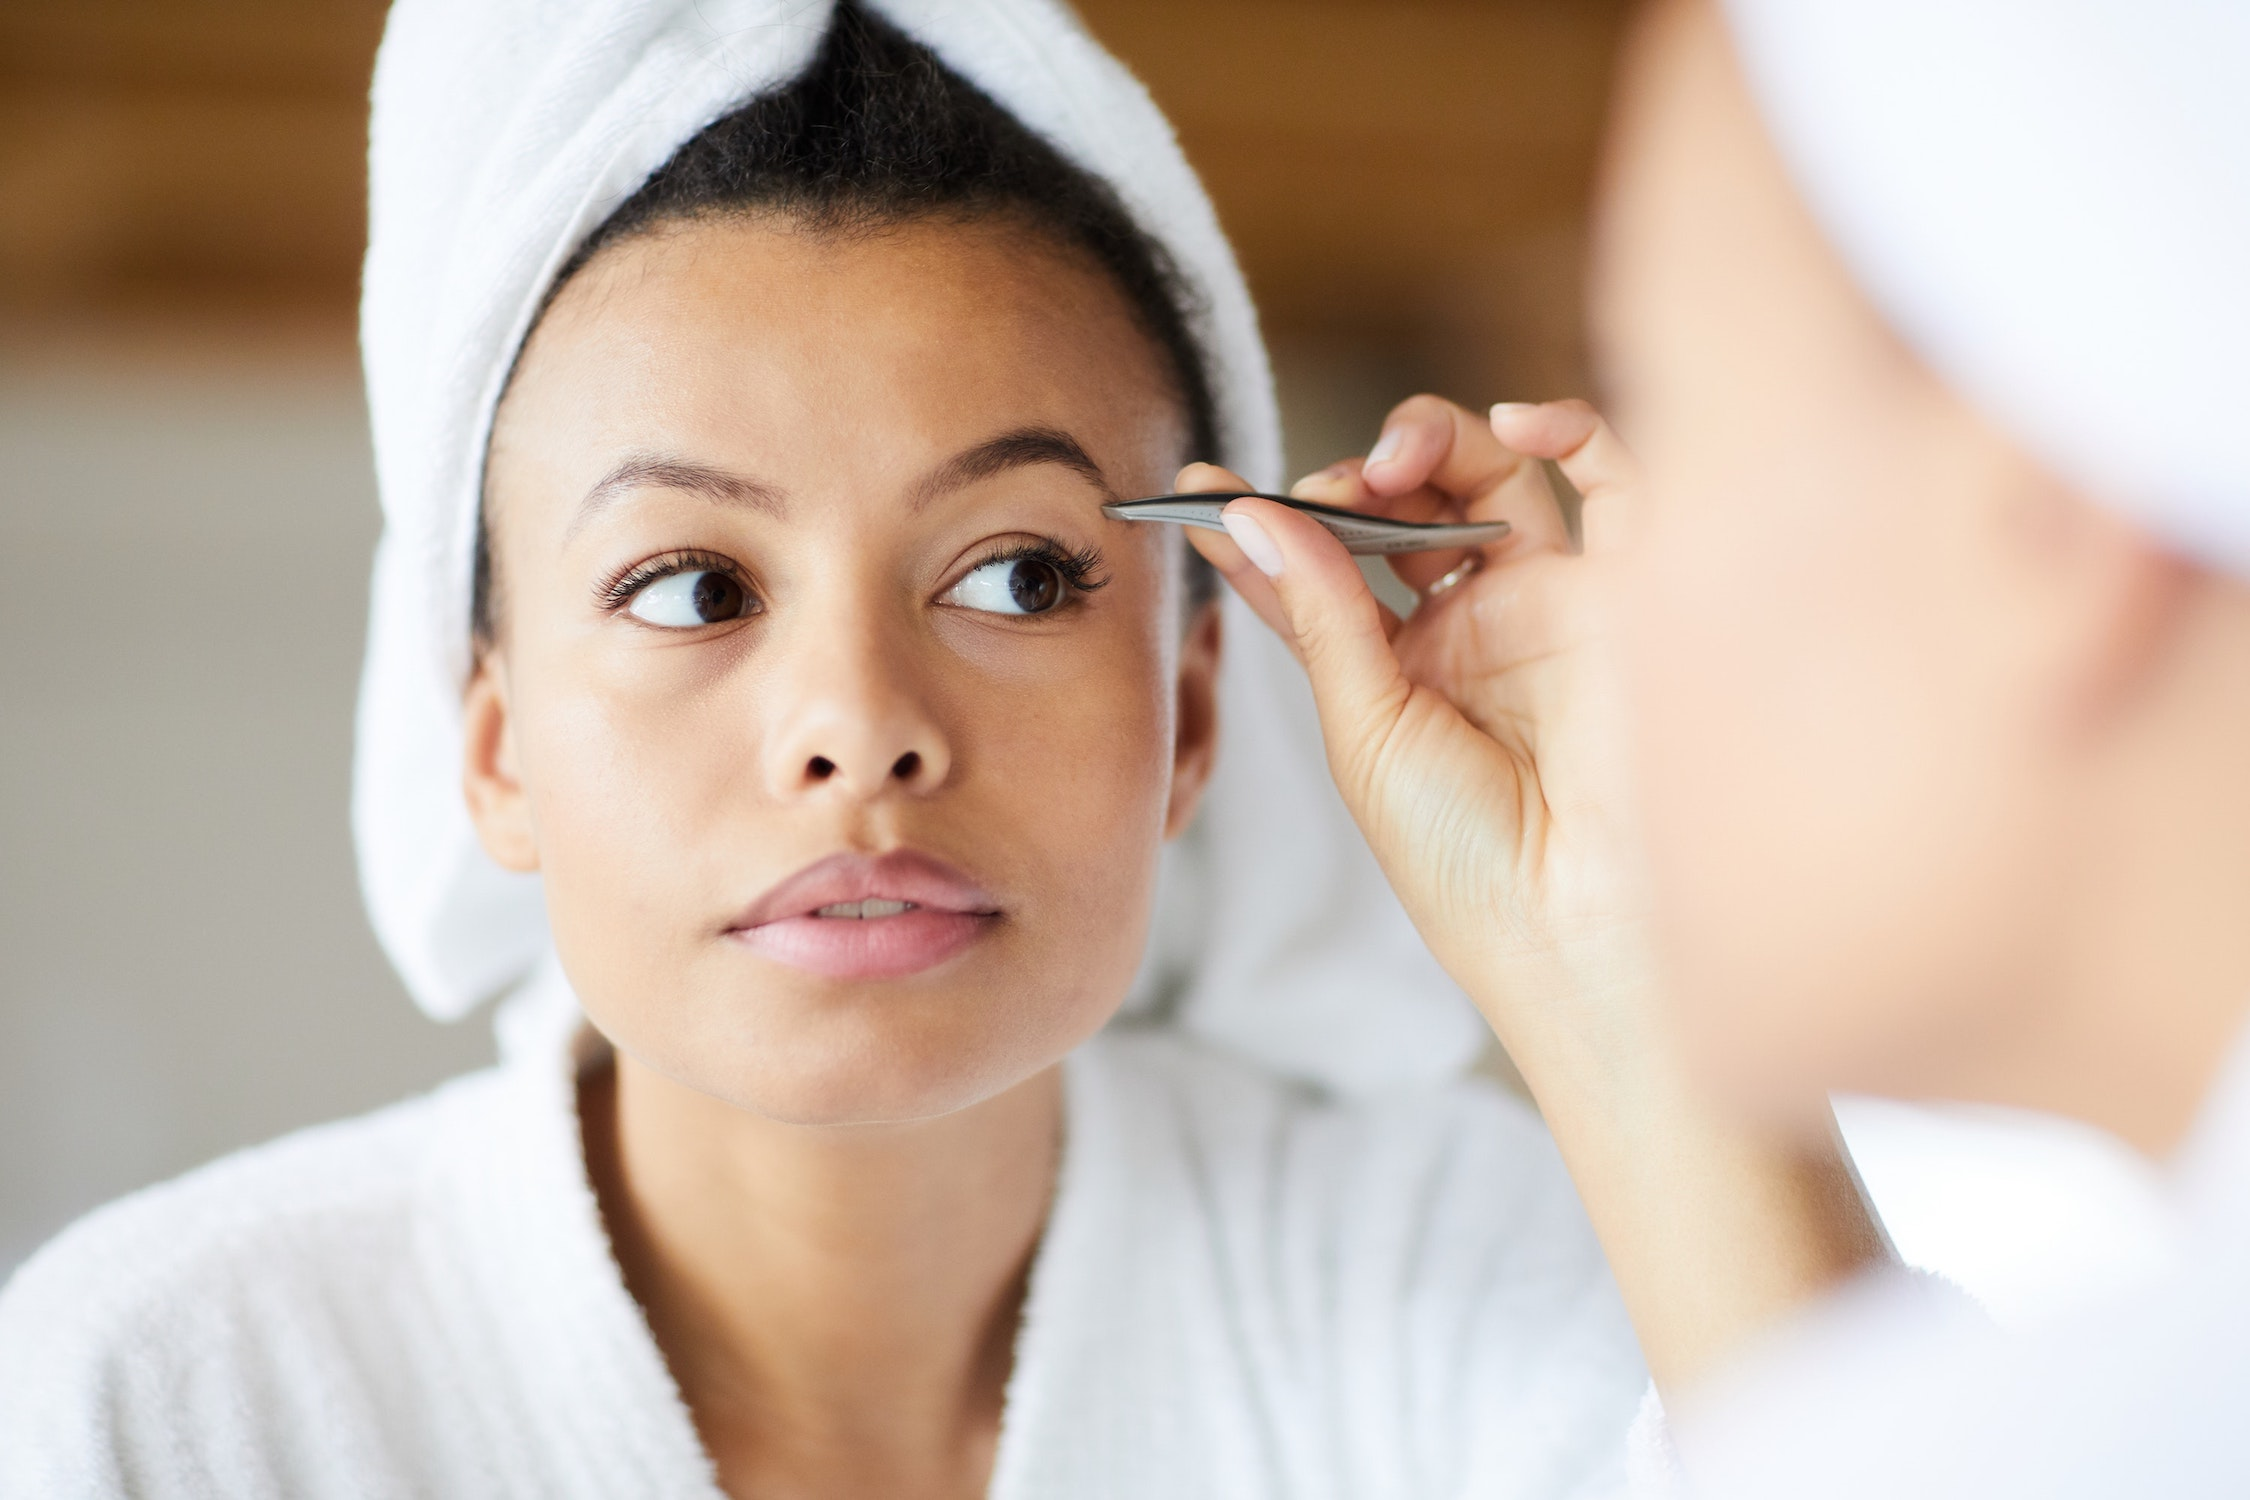 At Home Eyebrow Grooming